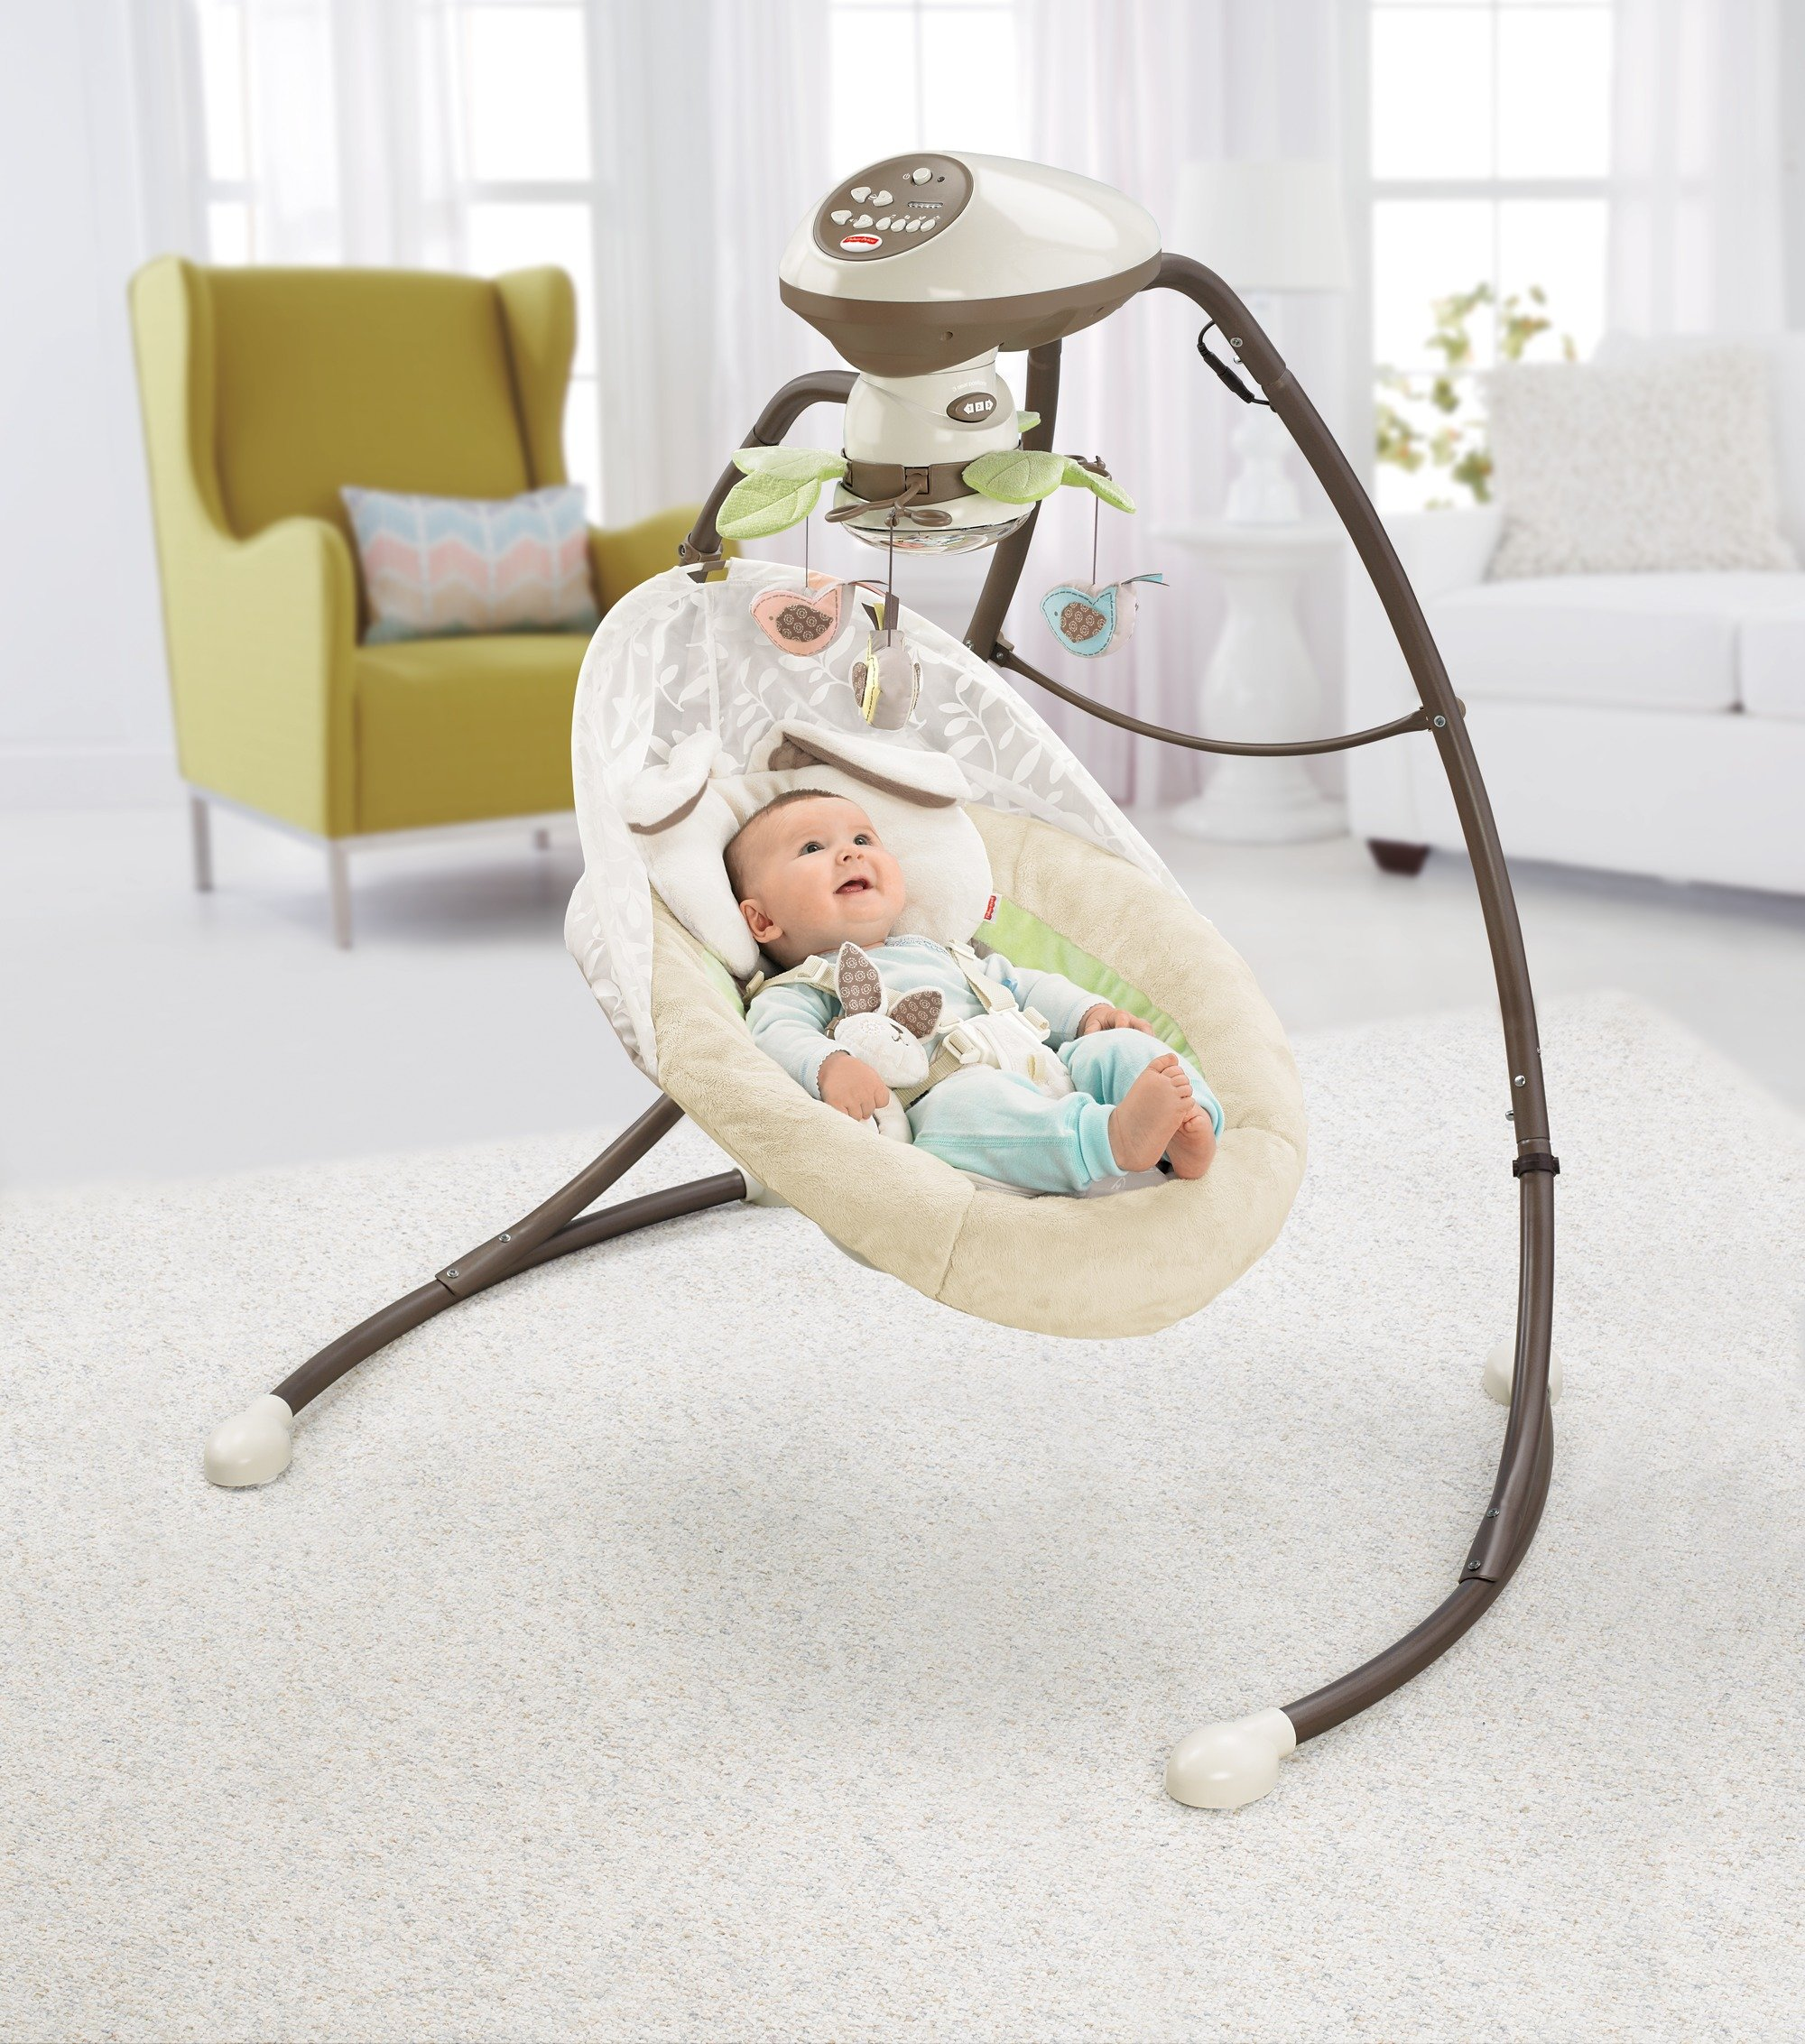 Fisher-Price Snugabunny Cradle 'n Swing with Smart Swing Technology by Fisher-Price (Image #1)